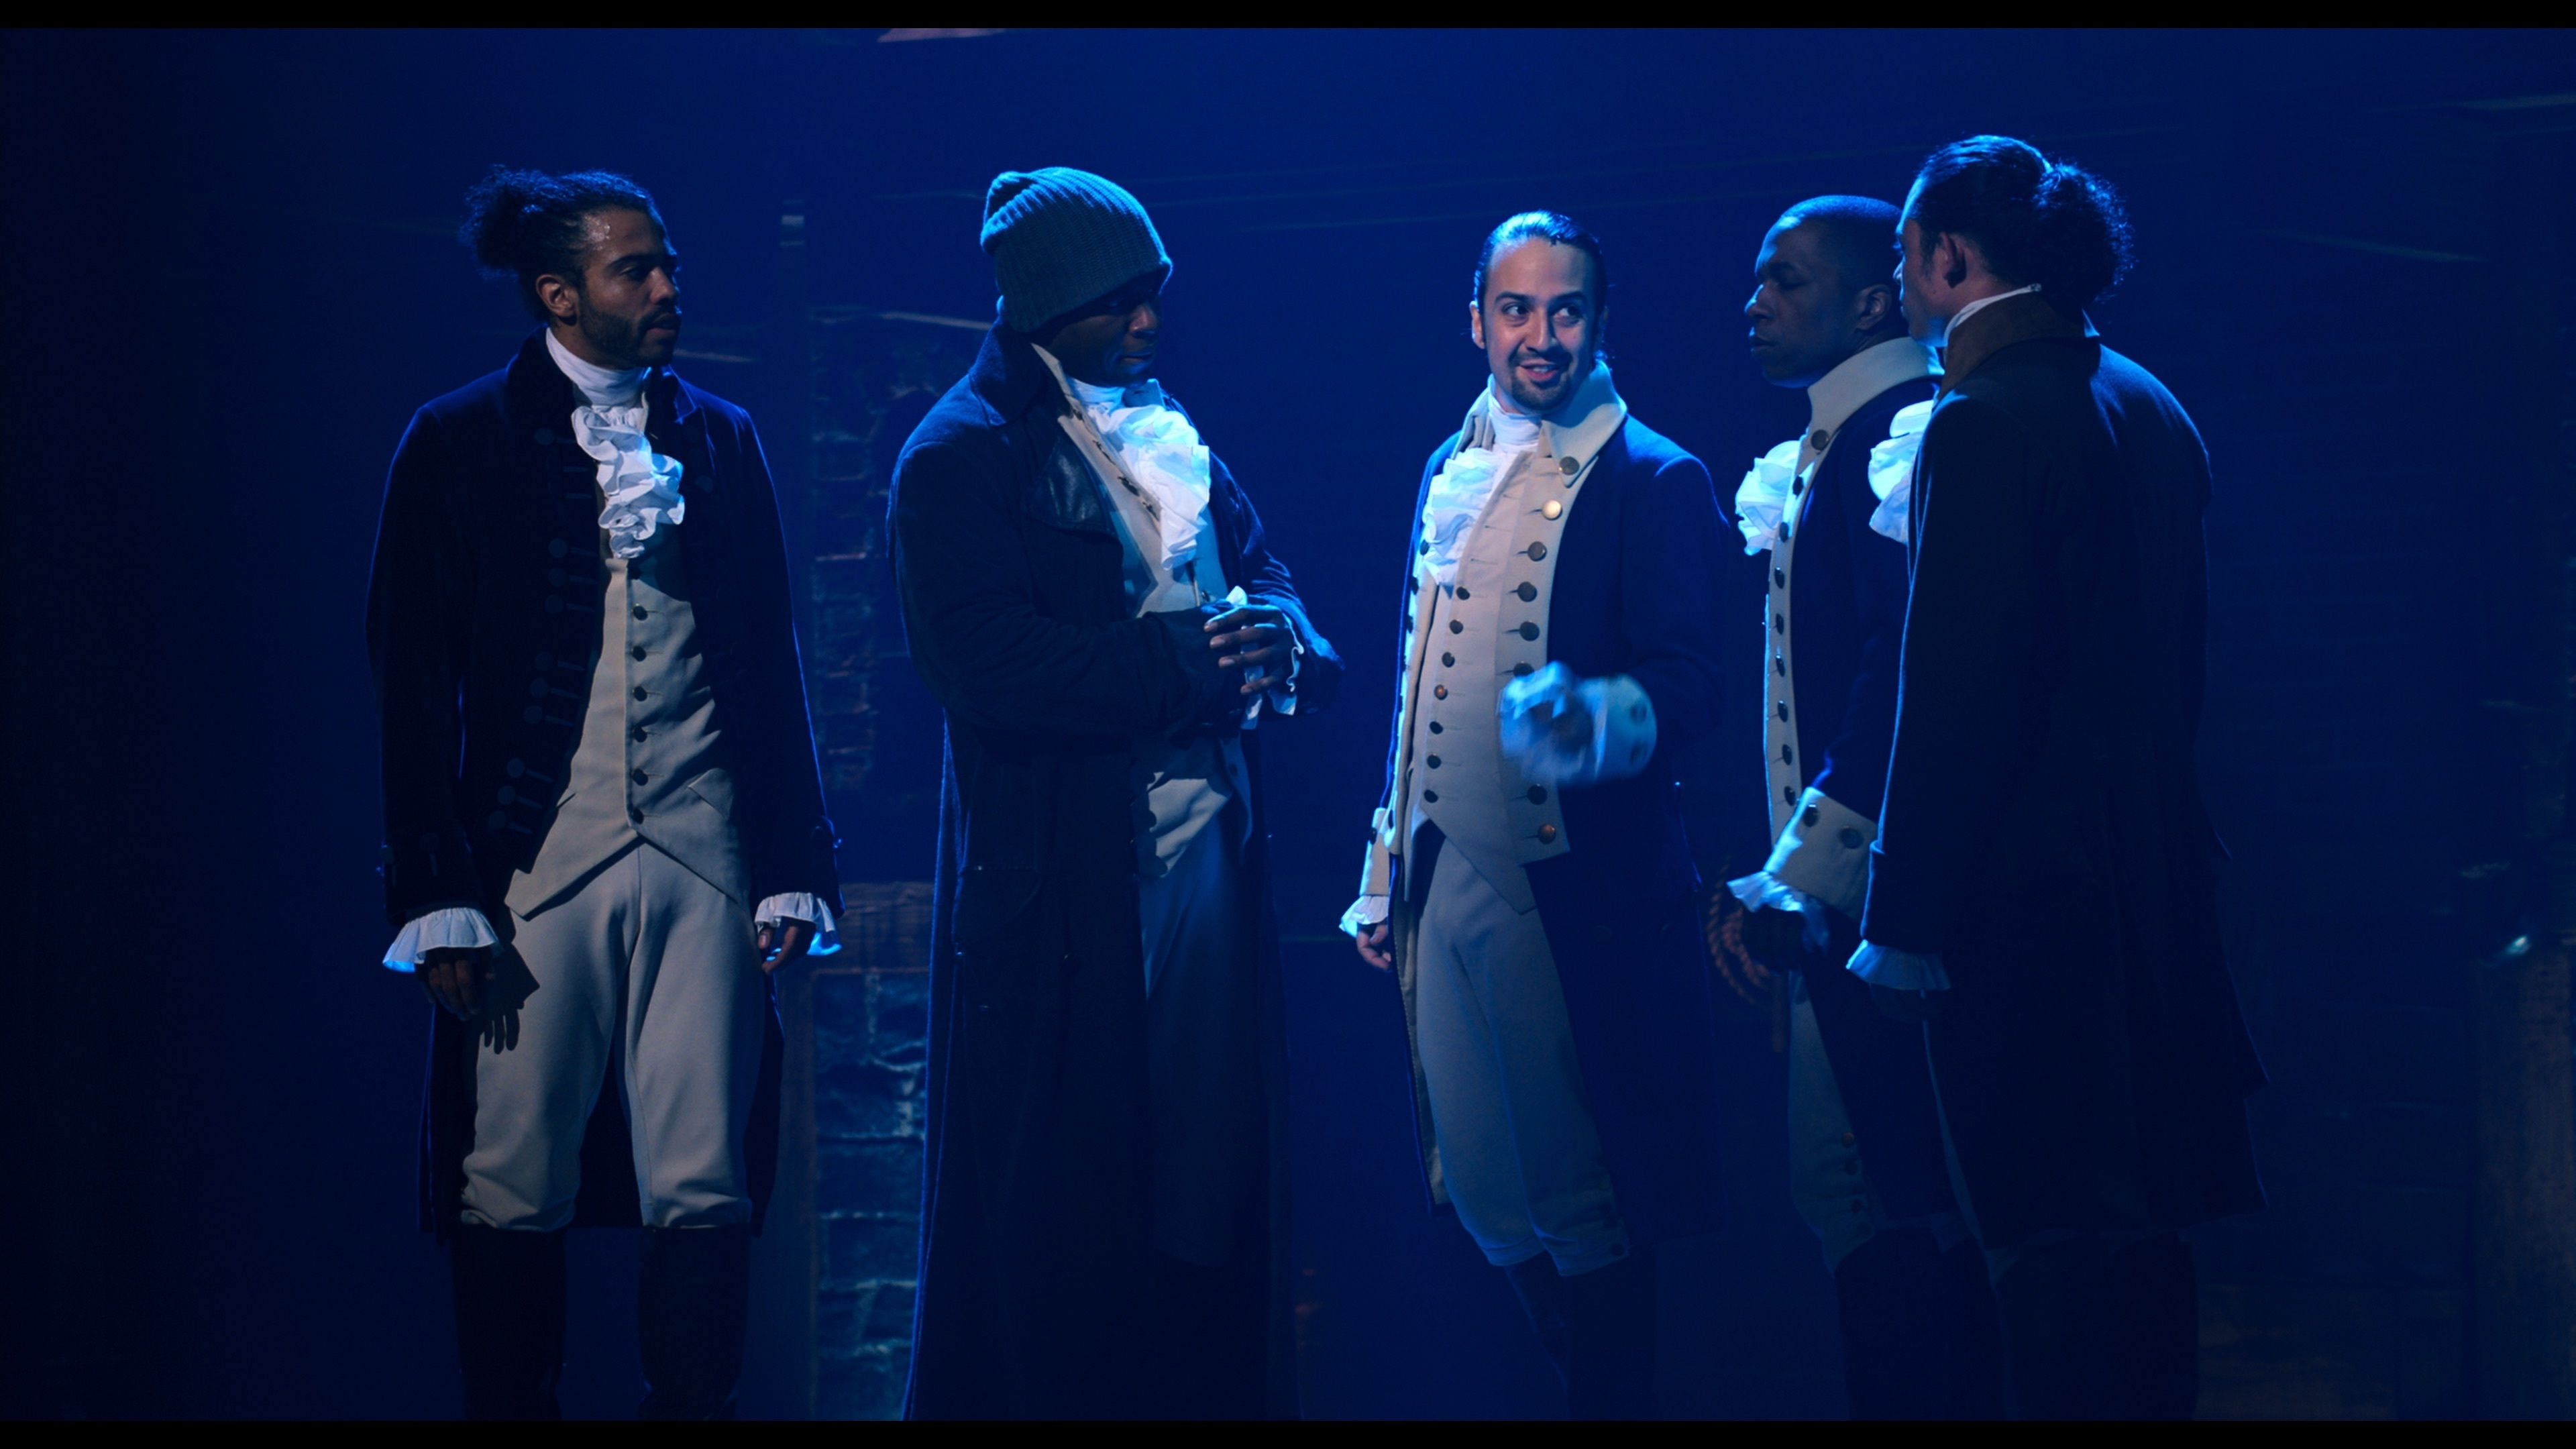 """Daveed Diggs is Marquis de Lafayette, Okieriete Onaodowan is Hercules Mulligan, Lin-Manuel Miranda is Alexander Hamilton, Leslie Odom Jr. is Aaron Burr and Anthony Ramos is John Laurens in """"Hamilton,"""" the filmed version of the original Broadway production. Aug. 6, 2020, marks 5 years since the musical opened on Broadway."""